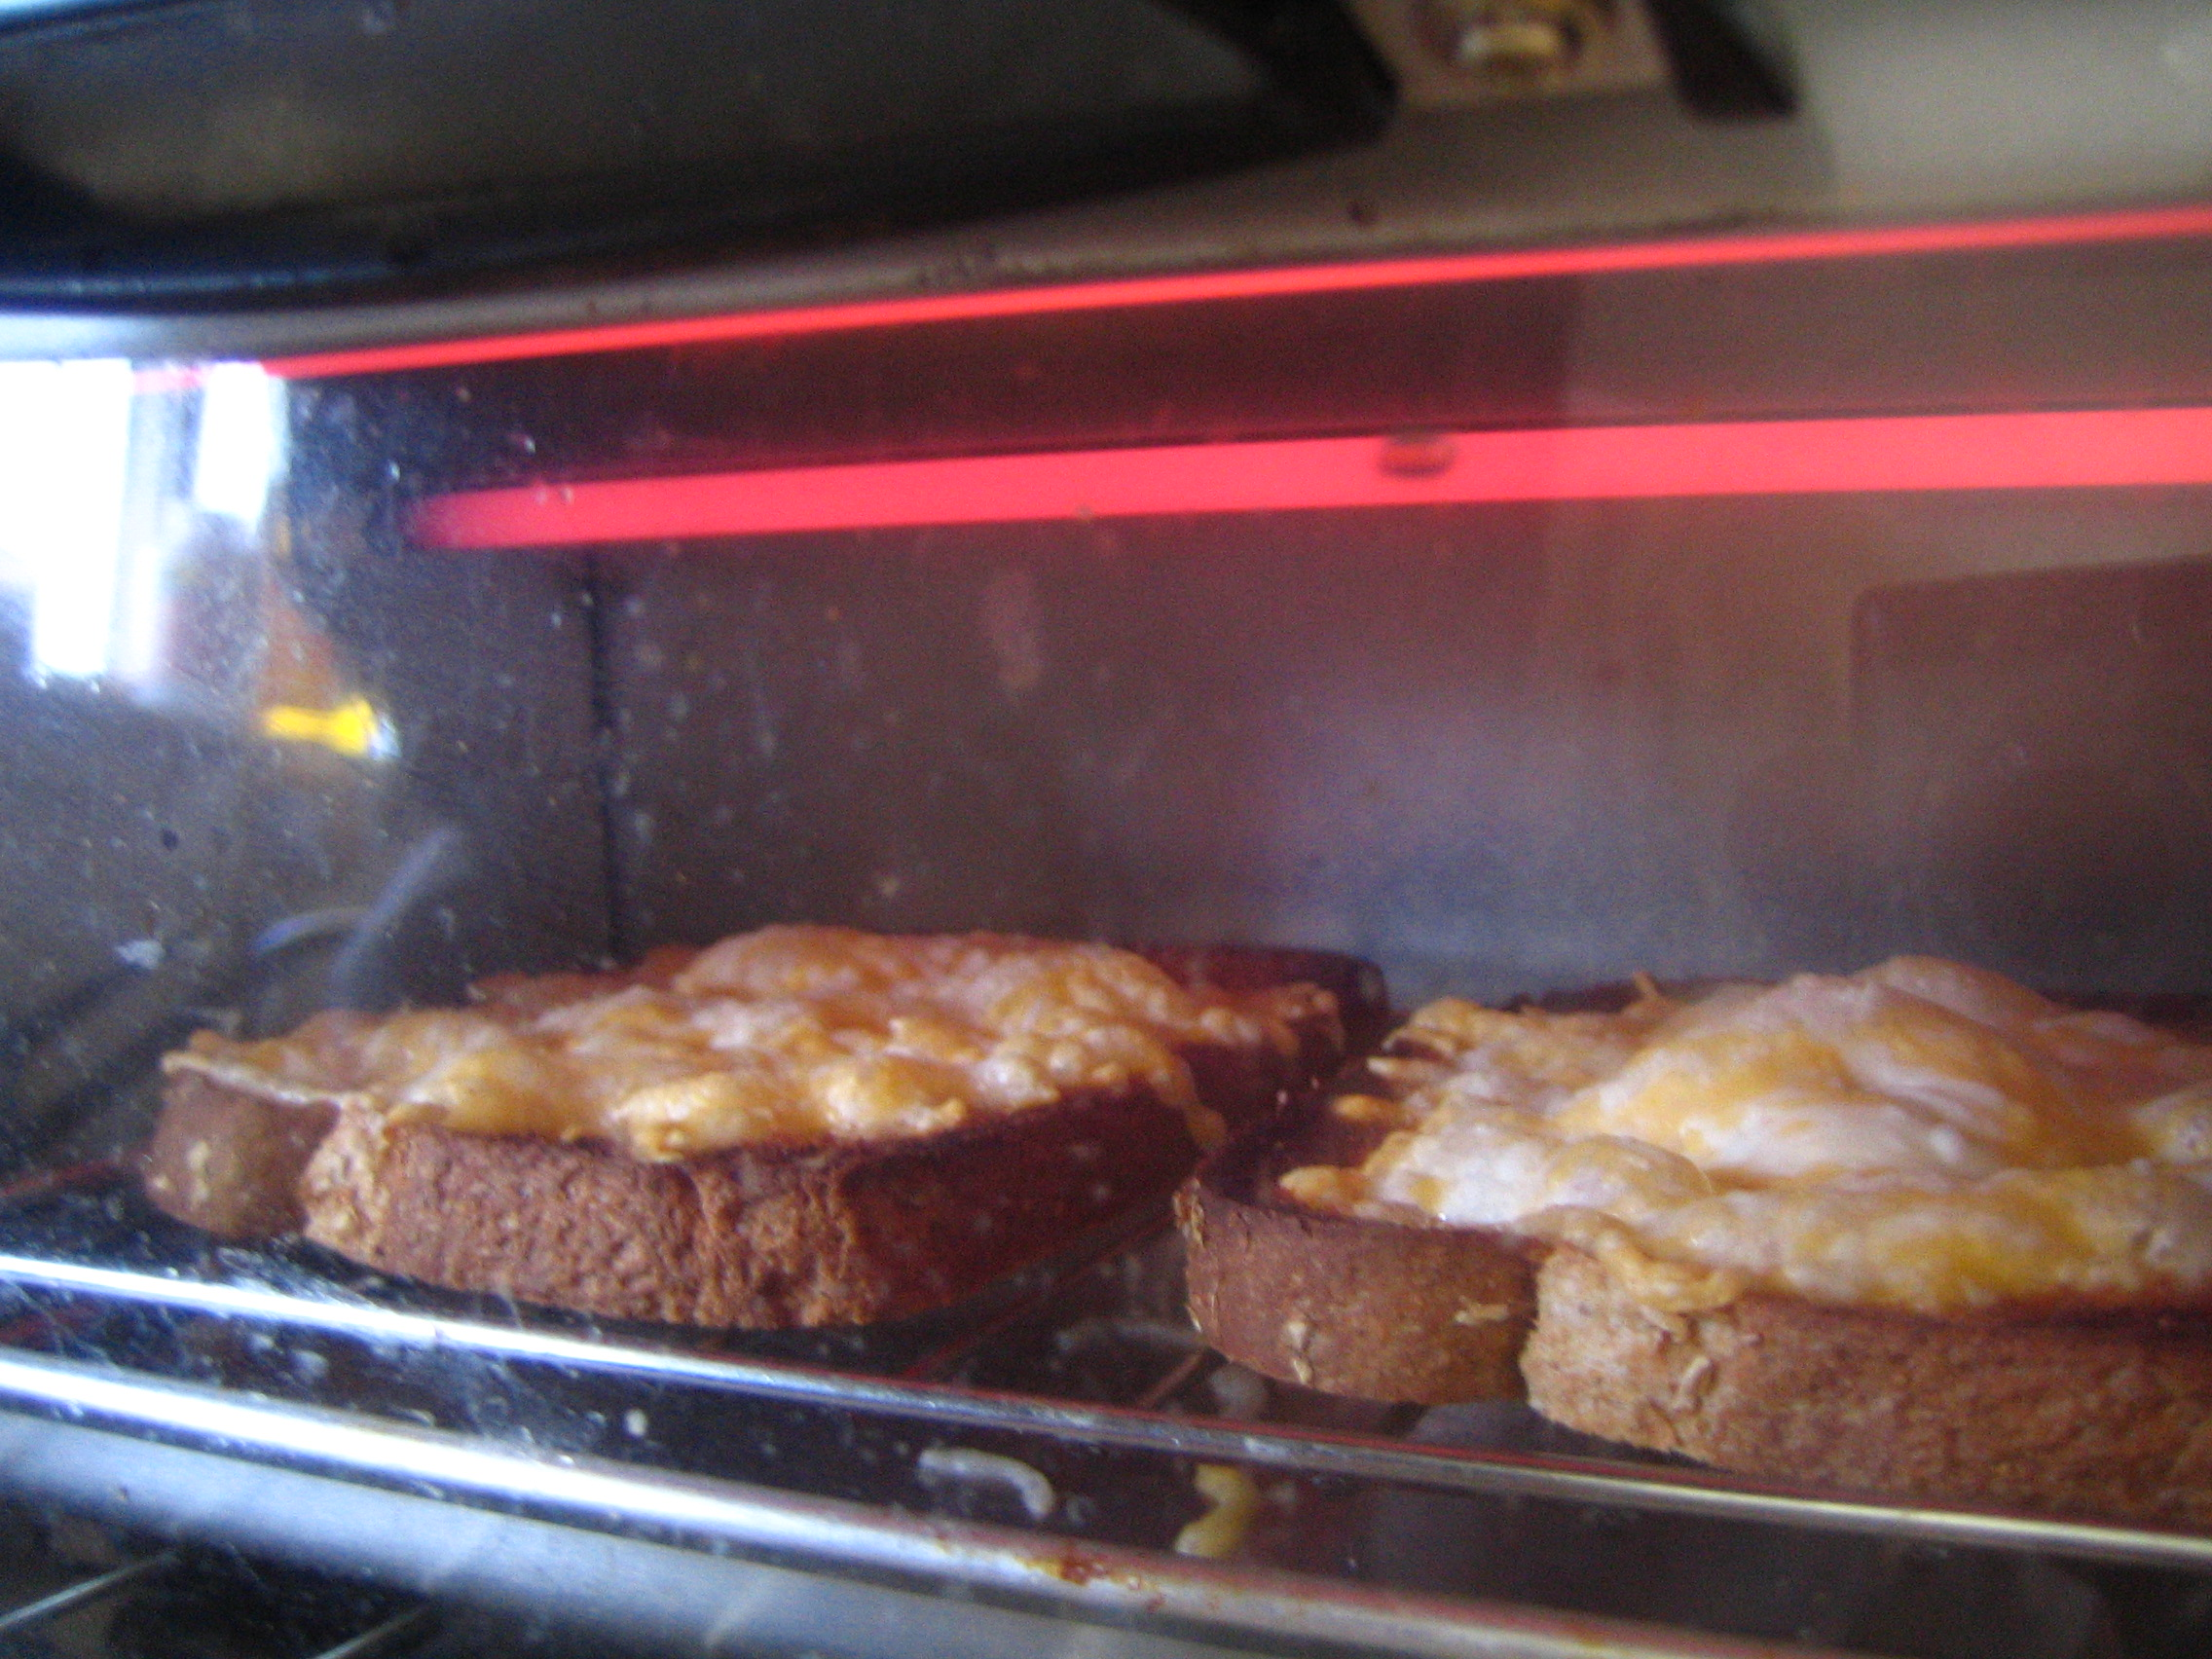 Image Result For Toaster Oven With